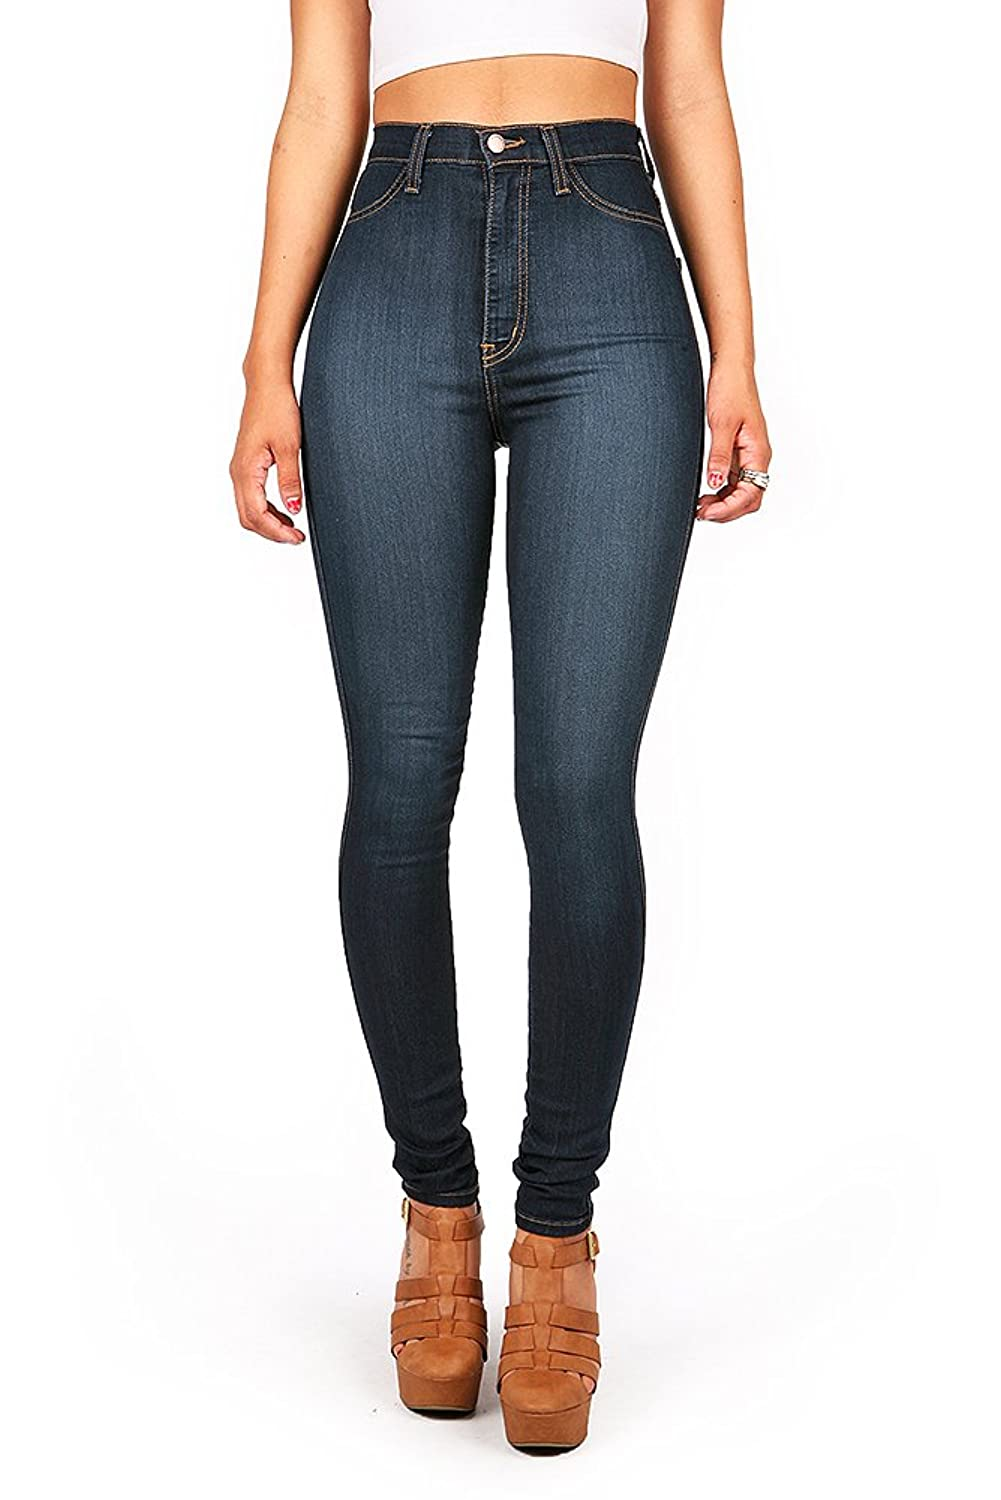 Denim Bloom Women's High Waisted Jeans Ripped Jeans Sculpted Ankle Skinny Stretch Jeans with Frayed Hem. $ $ 50 99 Prime. out of 5 stars 6. Madison. Our Brand. Madison Denim Women's Parsons High Rise Skinny in Hyperstretch. $ $ 59 59 $ Prime. 4 out of 5 .